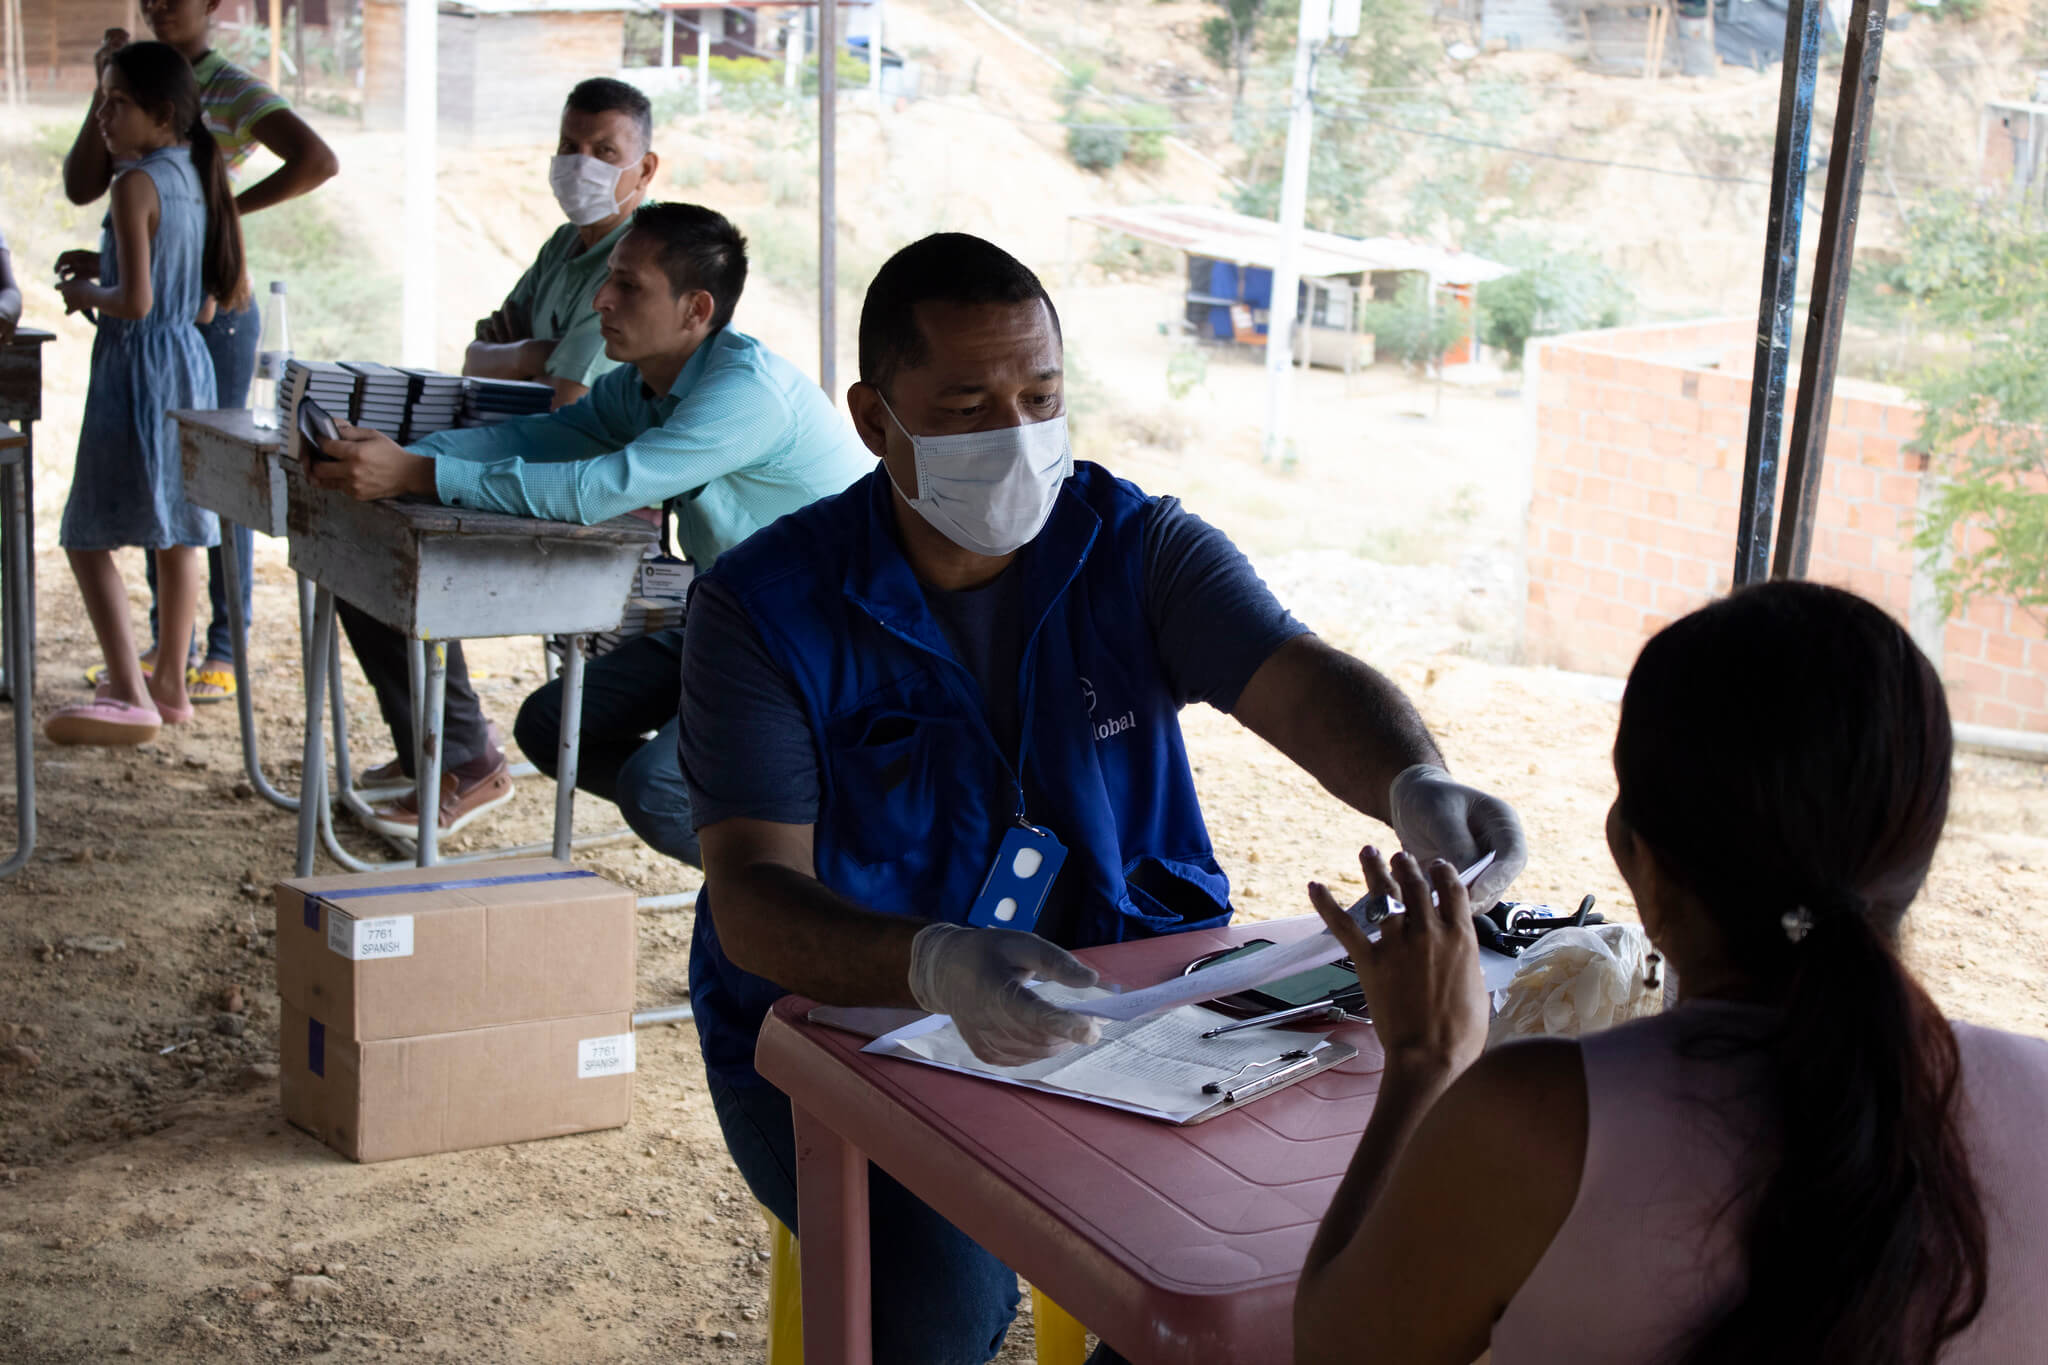 In March 2020, ngo MedGlobal conducted a medical brigade in Cúcuta, Colombia, a border city that has become an epicenter of Venezuelan migration. MedGloba